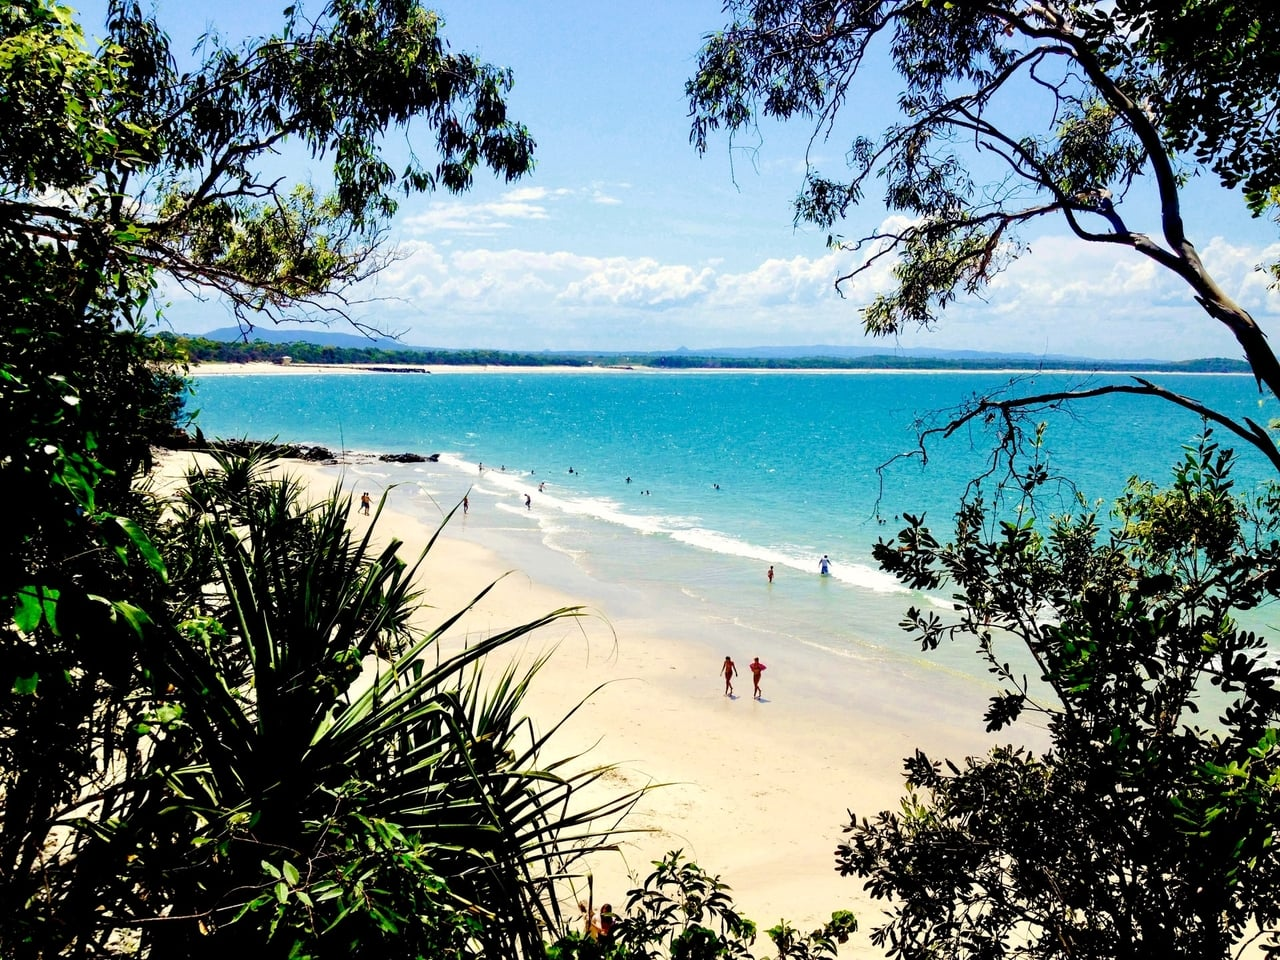 Little Cove Beach, one of the quietest beaches in Noosa